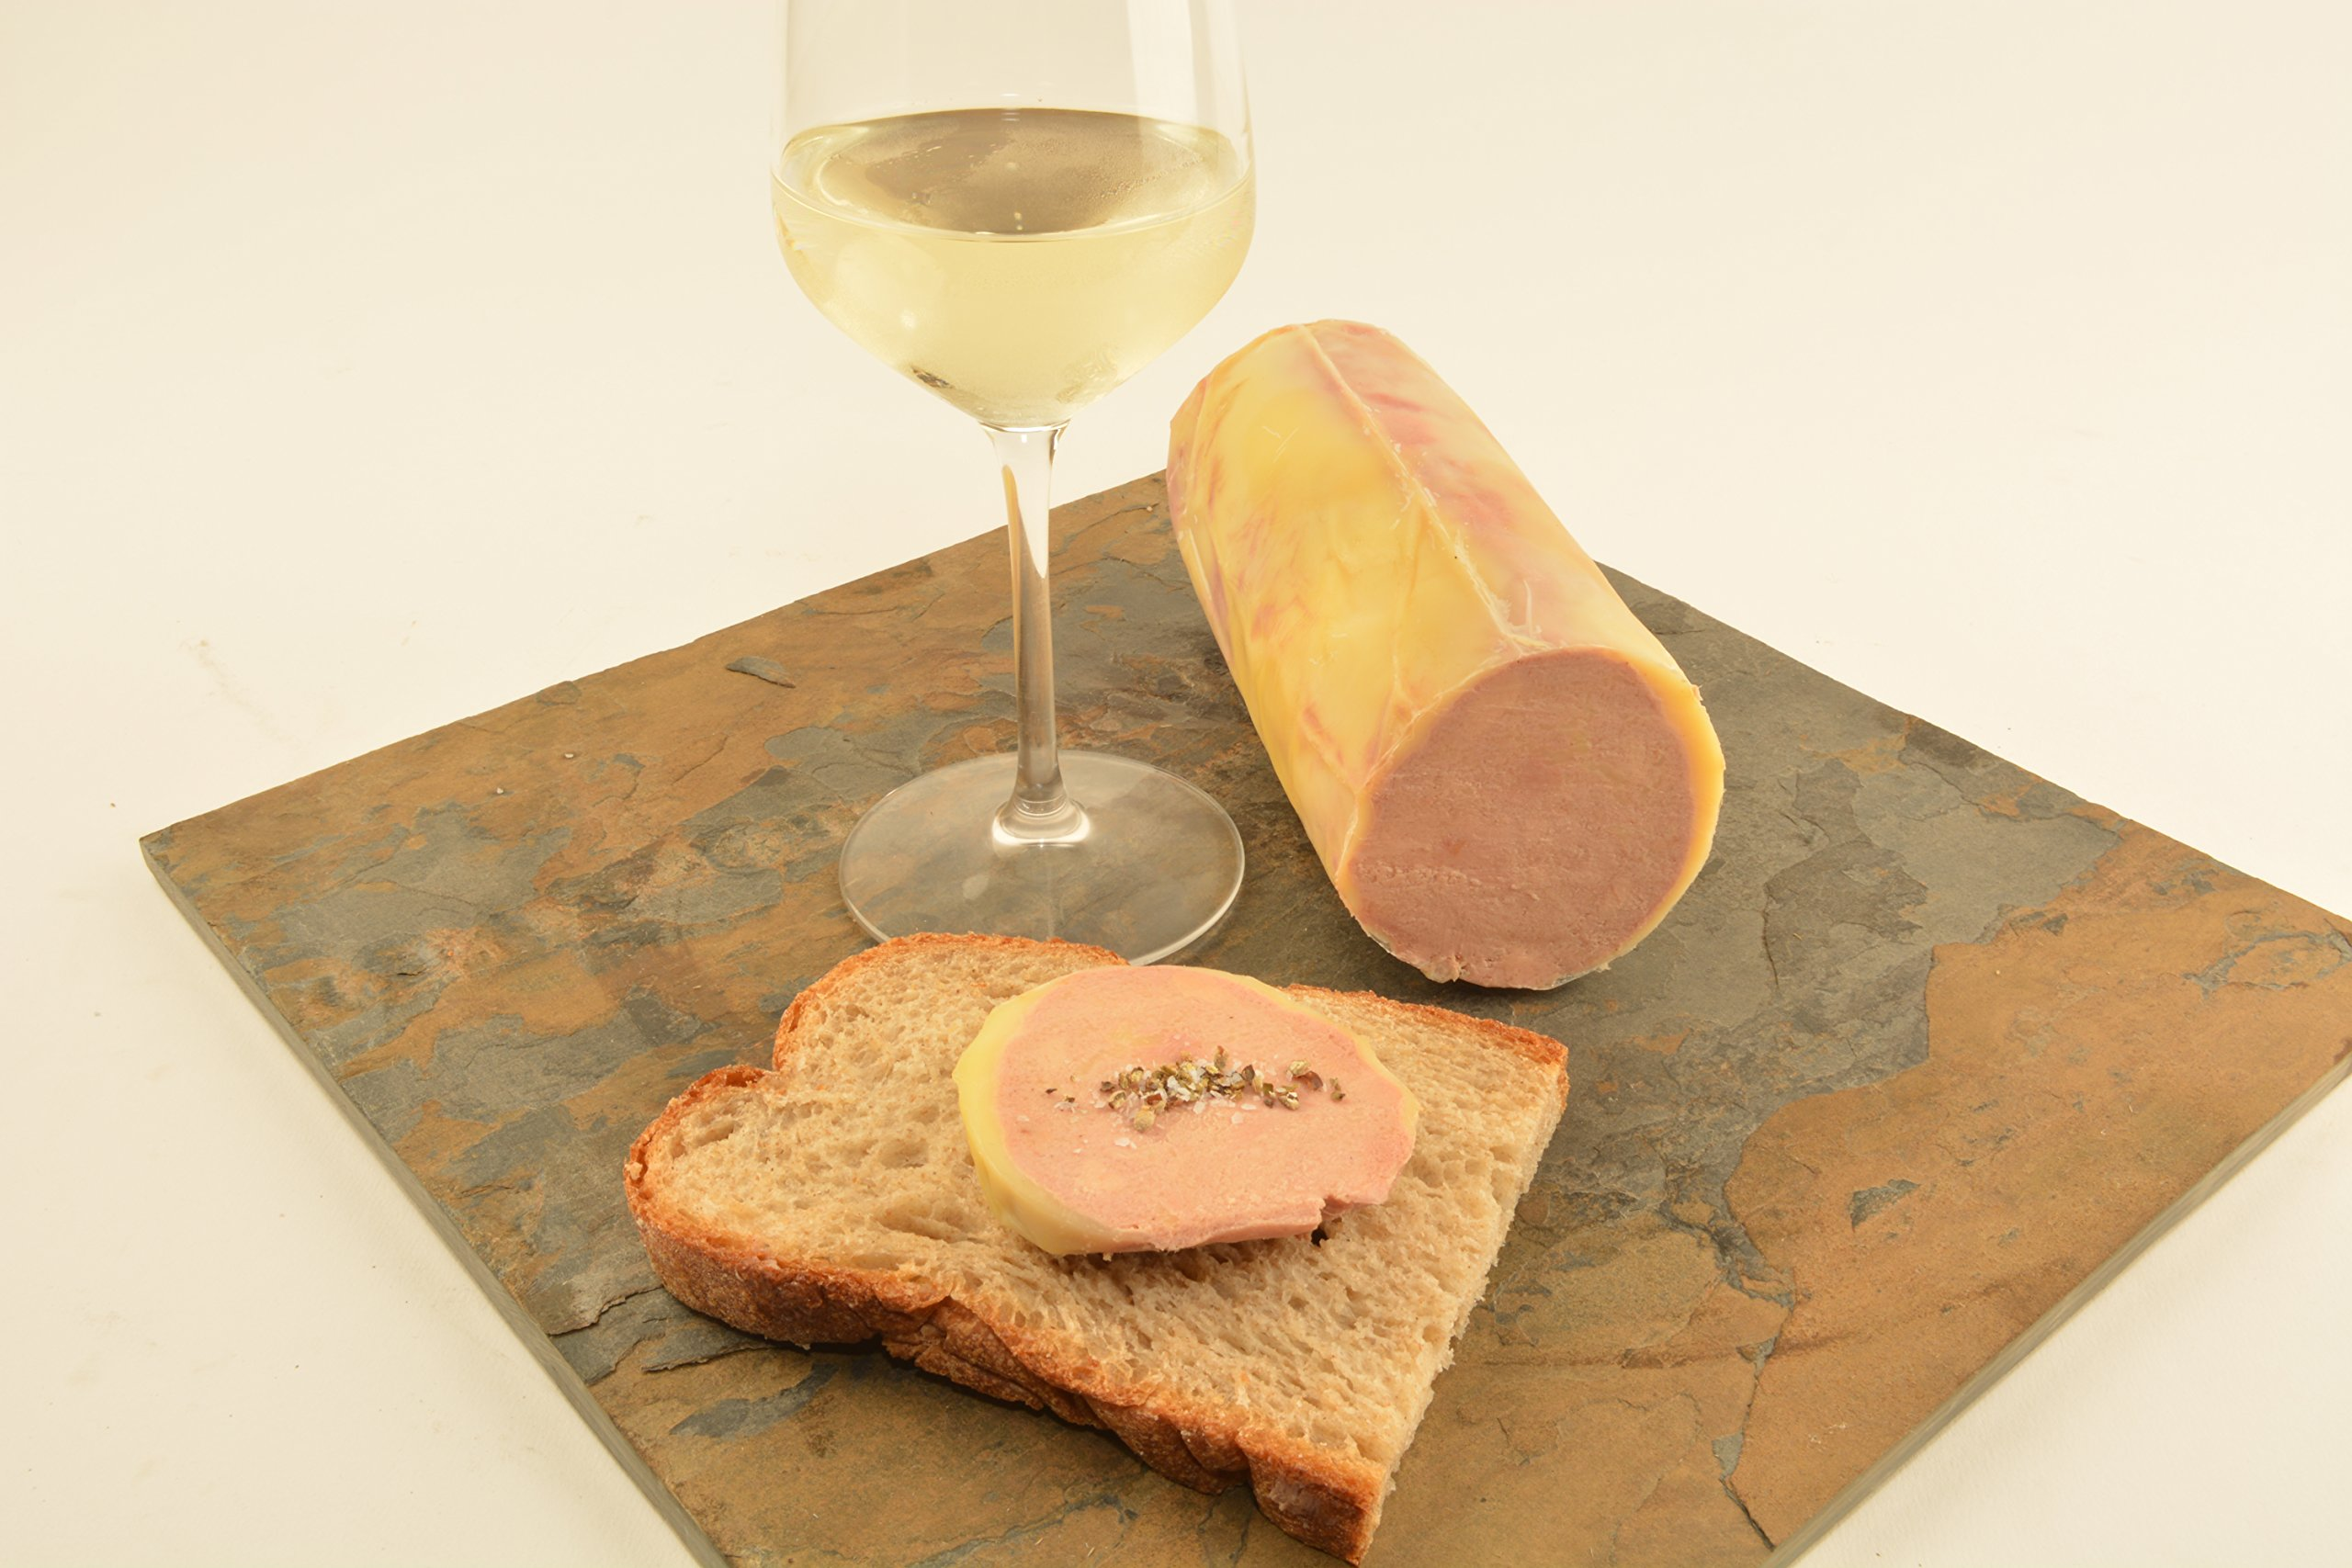 French Foie Gras Torchon Style, 1.3lbs